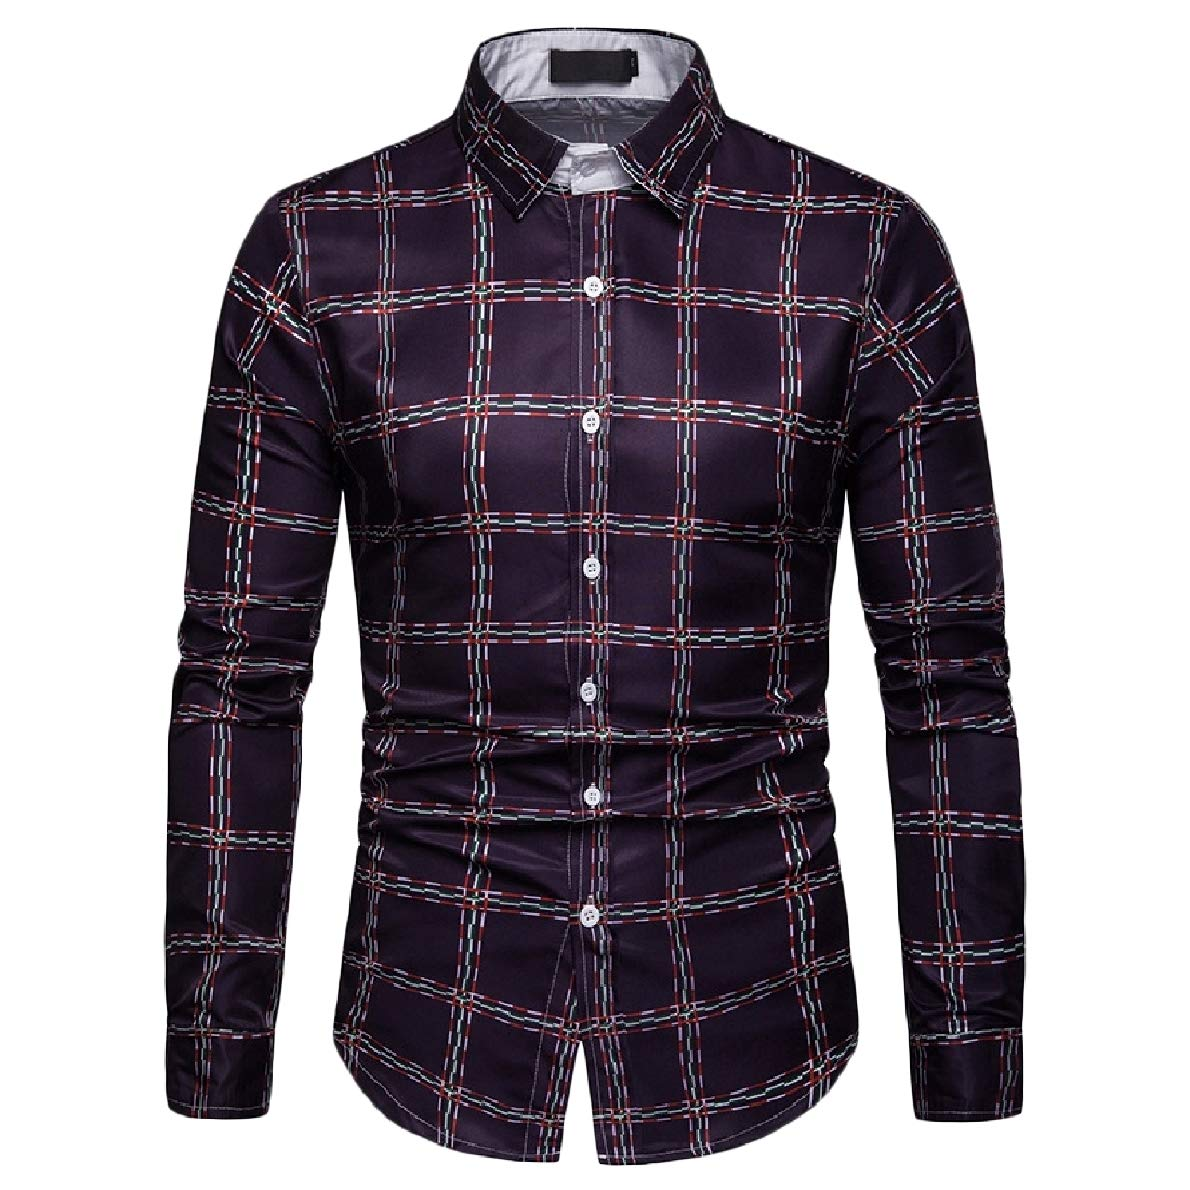 WillingStart Mens Plaid Long Sleeve Casual Fitted Button-up Lapel Tops Shirt